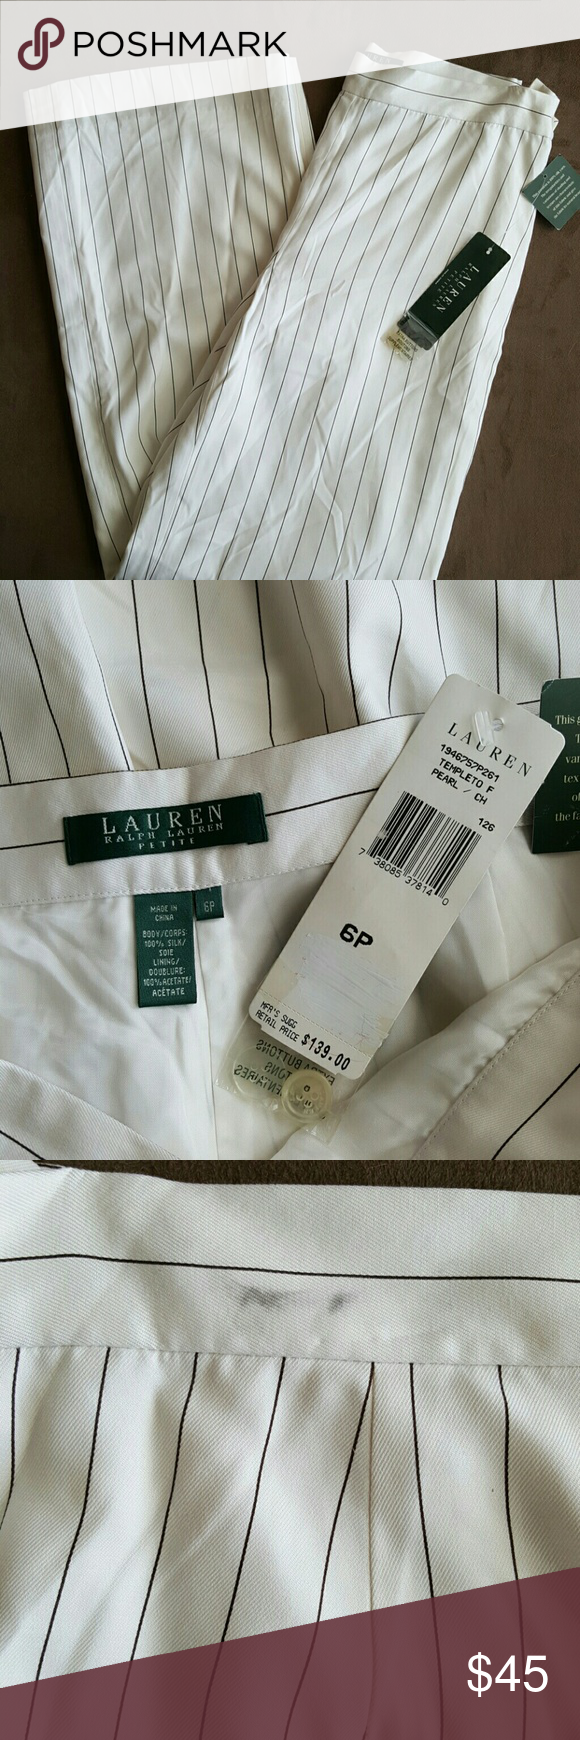 NWT Ralph Lauren Silk Pinstripe Pants size 6P NWT pearl color pants with a brown pinstripe. They have two marks on them as shown in pictures from hangers didn't want to go have it dry-cleaned or try to take it off since they were still new with tags. They are wide legged. Ralph Lauren Pants Trousers